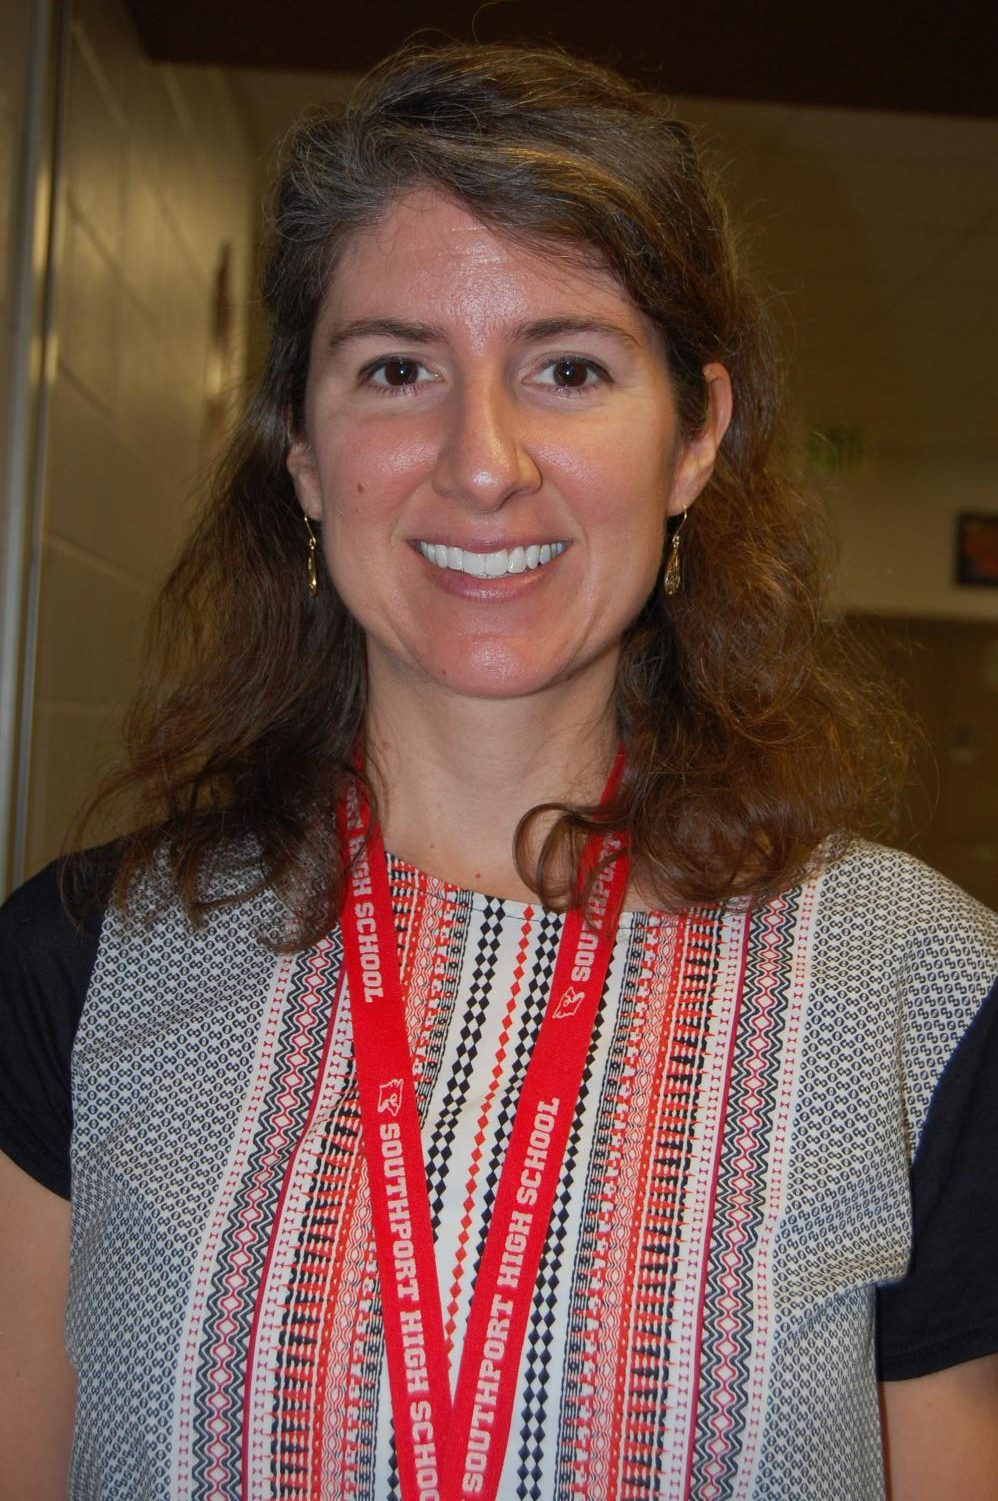 Christina Ferguson is the director of NHS and is in charge of the blood drive.